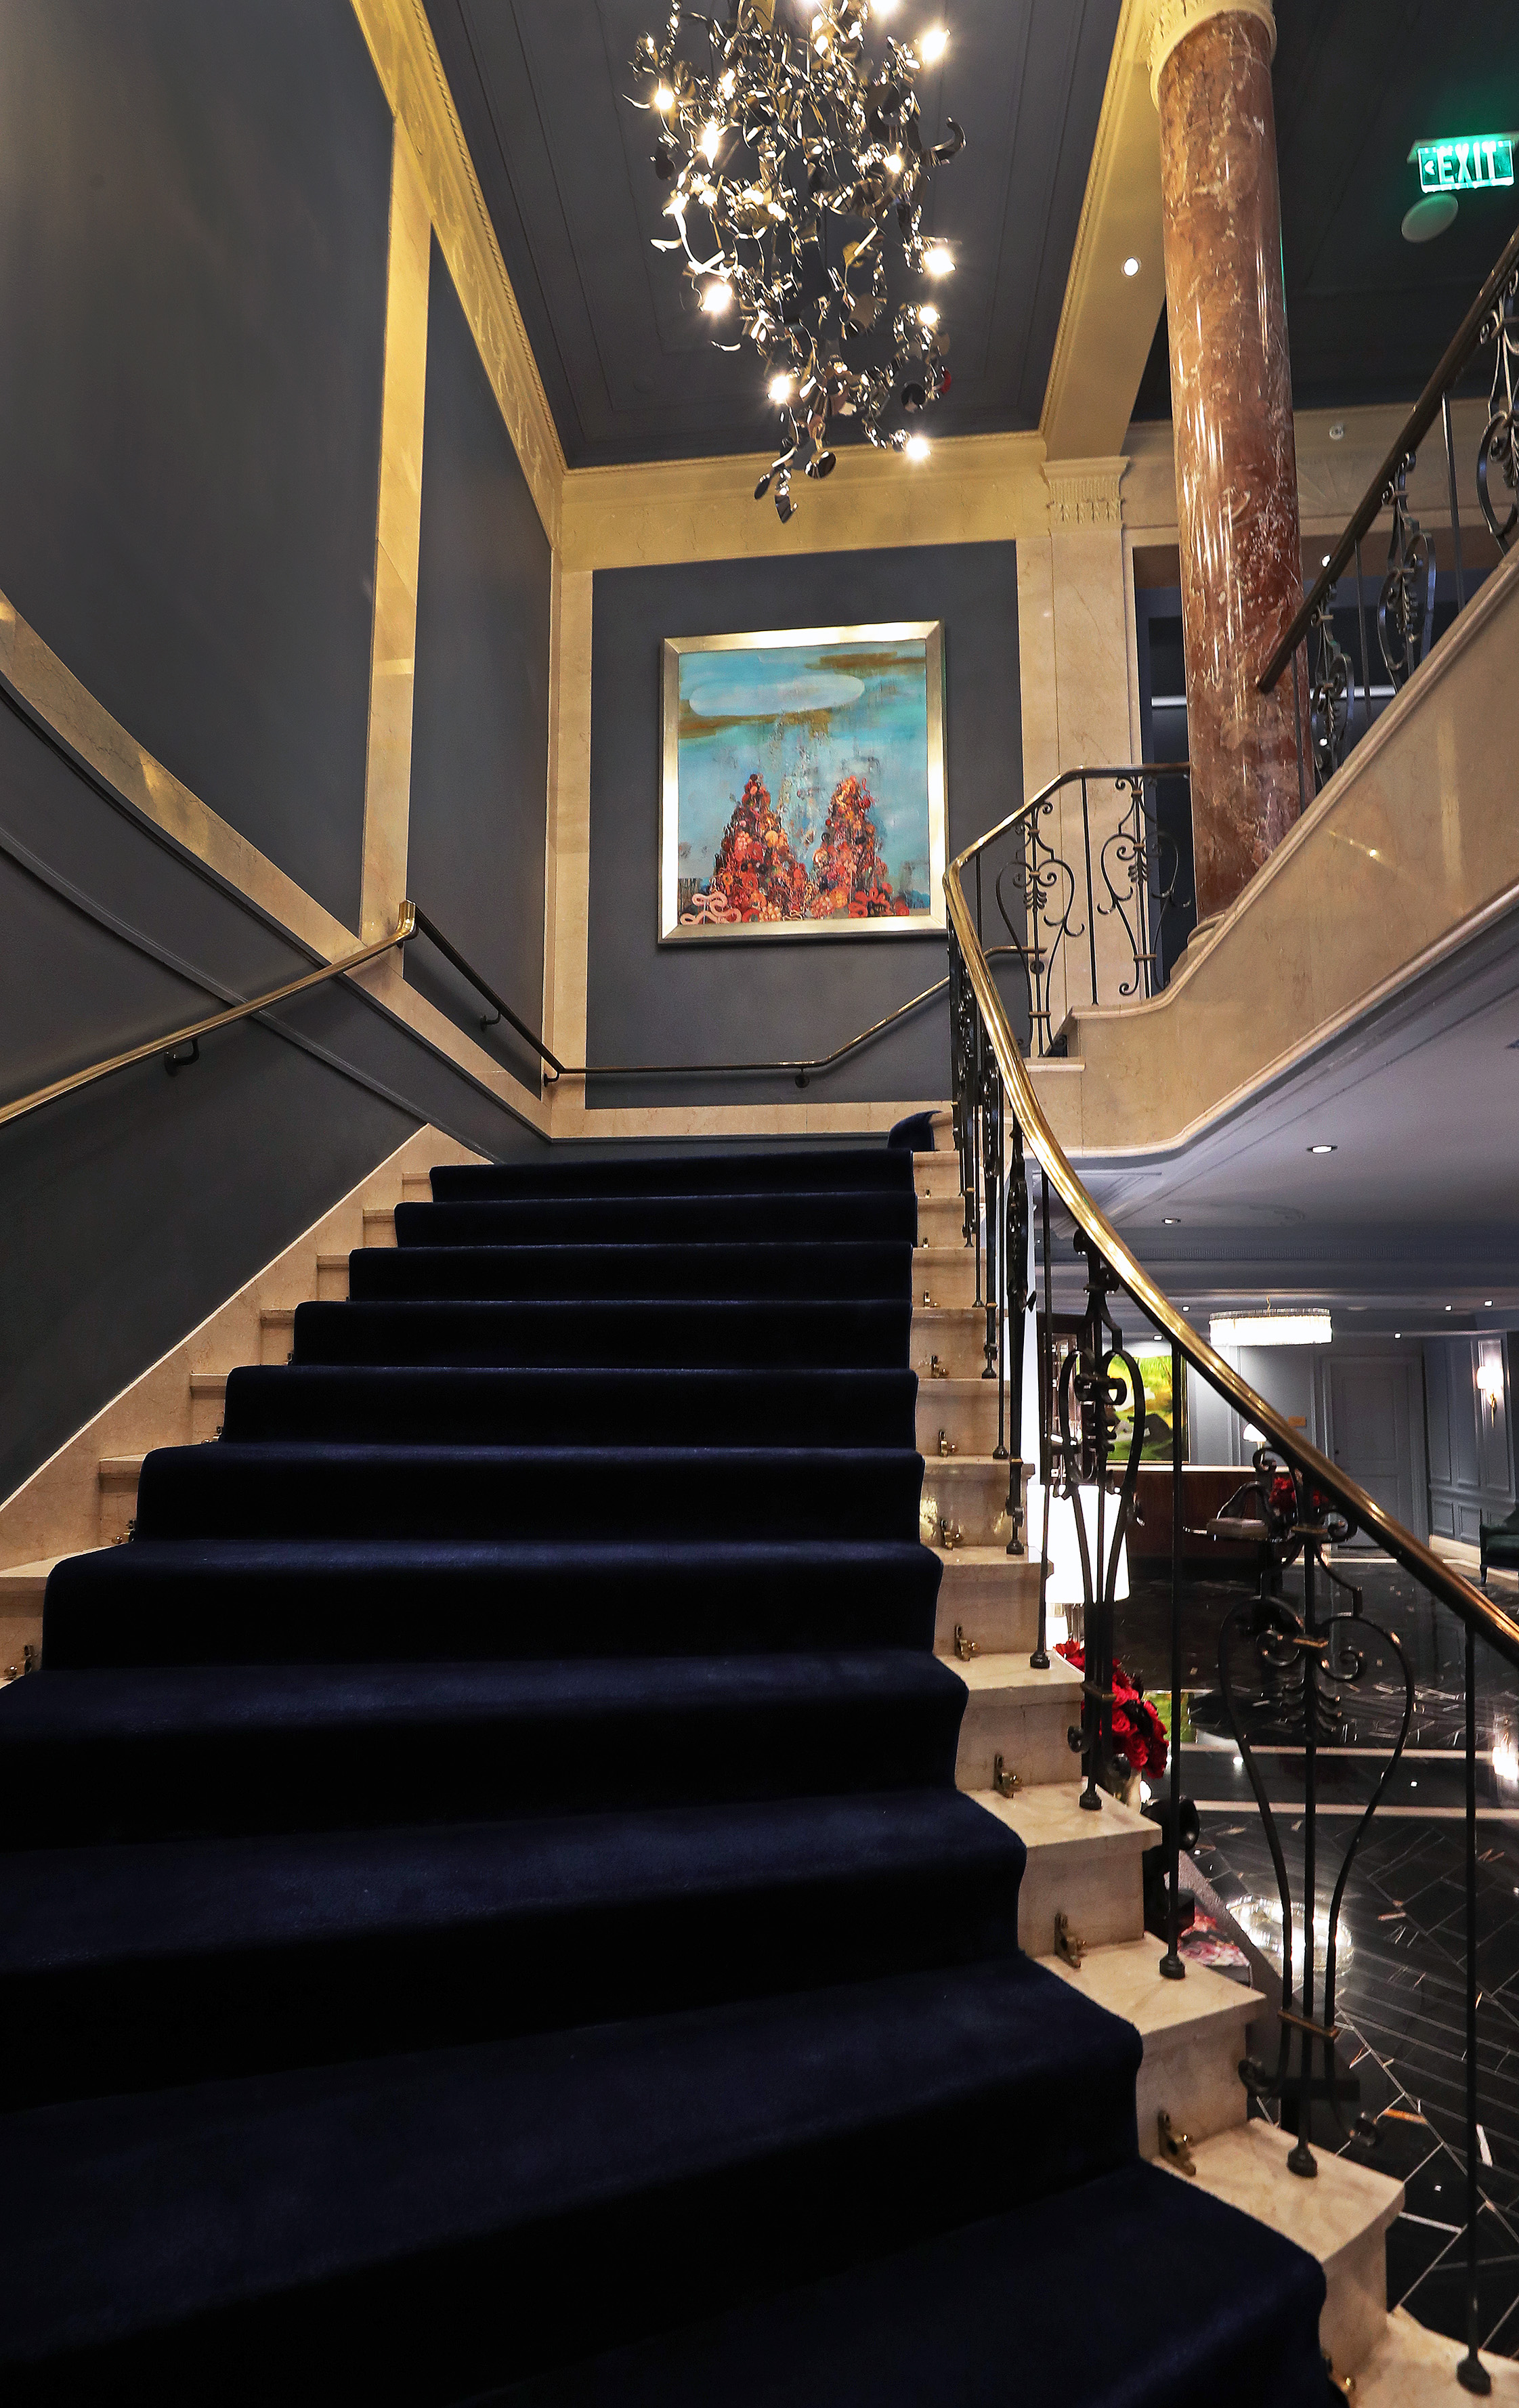 The staircase leading from the first floor lobby to the second floor.